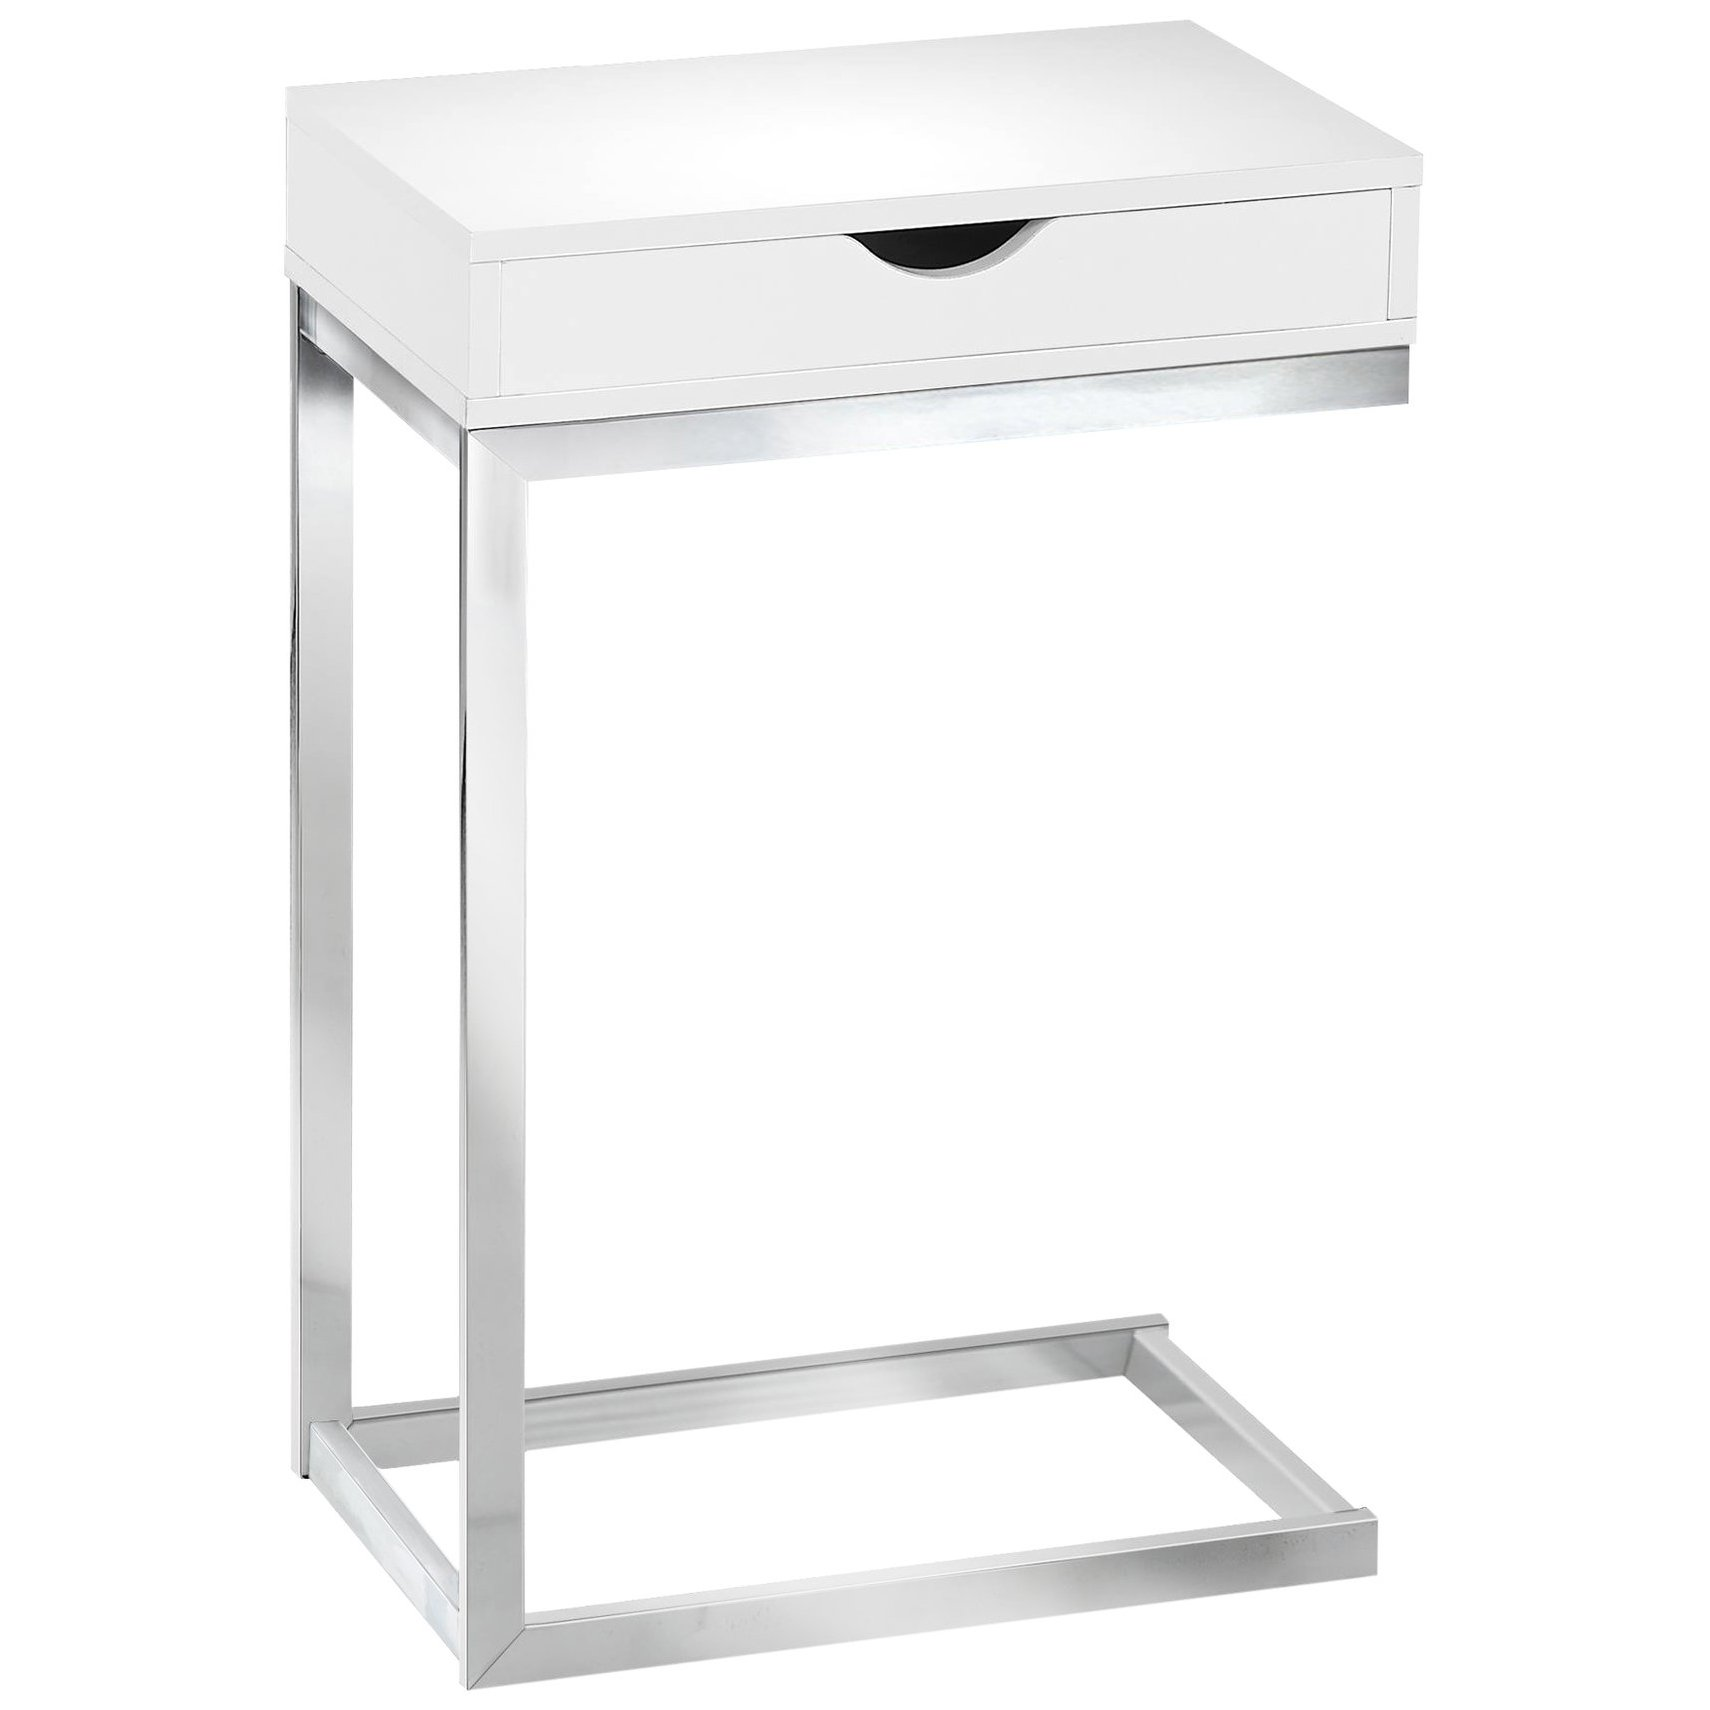 accent table with drawer winsome ava black finish monarch specialties chrome metal glossy white sheesham wood side small asian lamps ikea garden shelf night stands wine racks